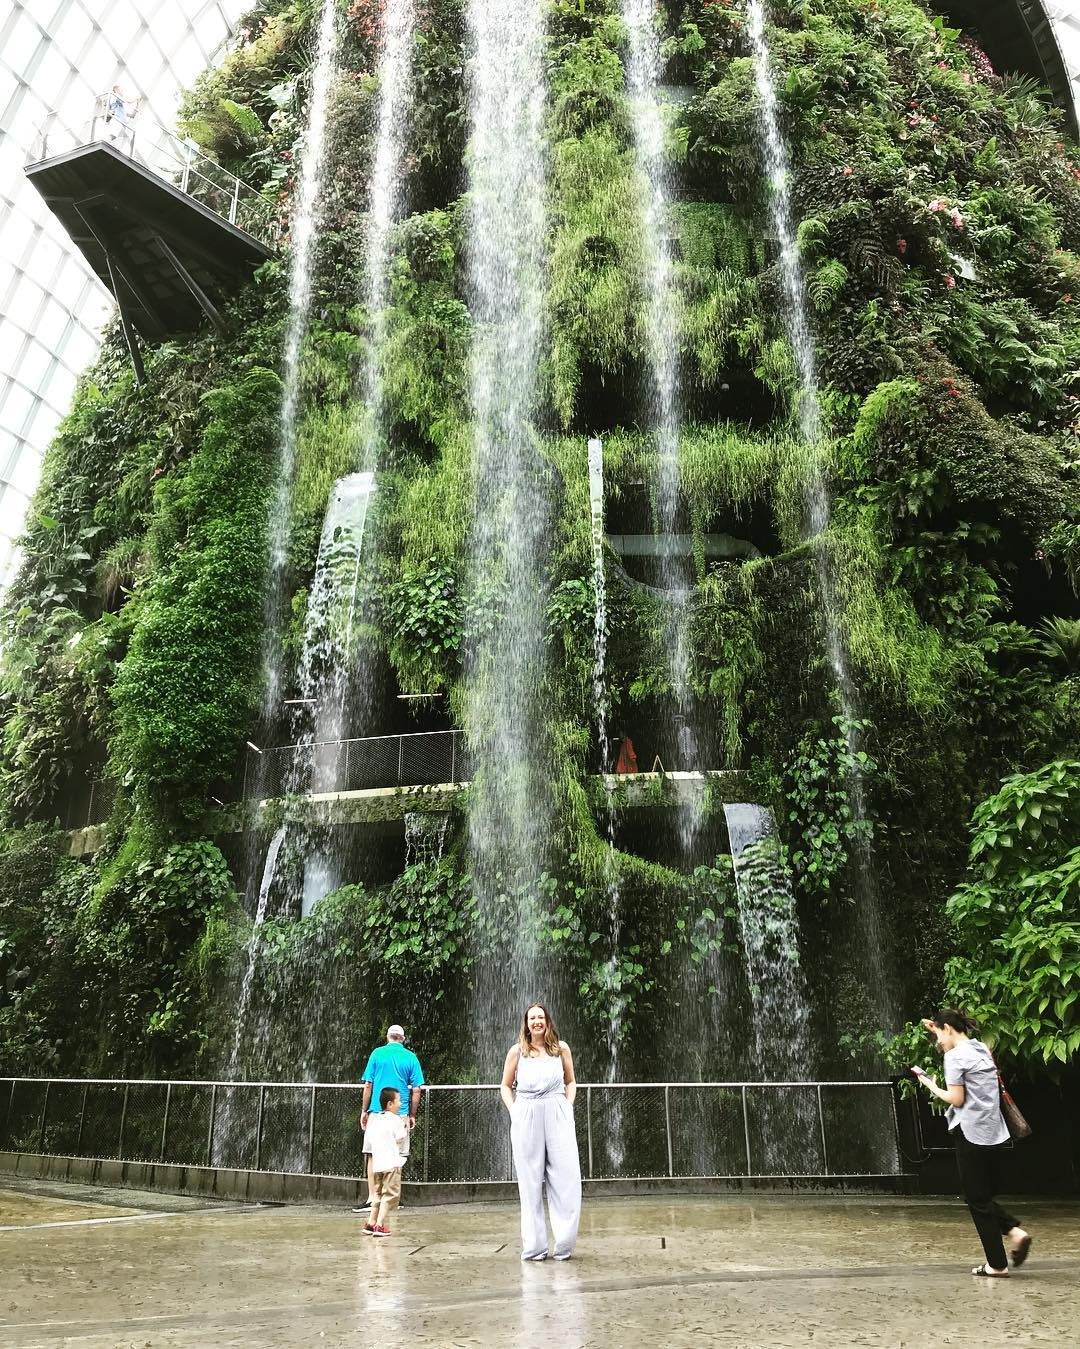 Inspirasi Wisata Traveling Singapore Garden by the Bay Cloud Forest 2